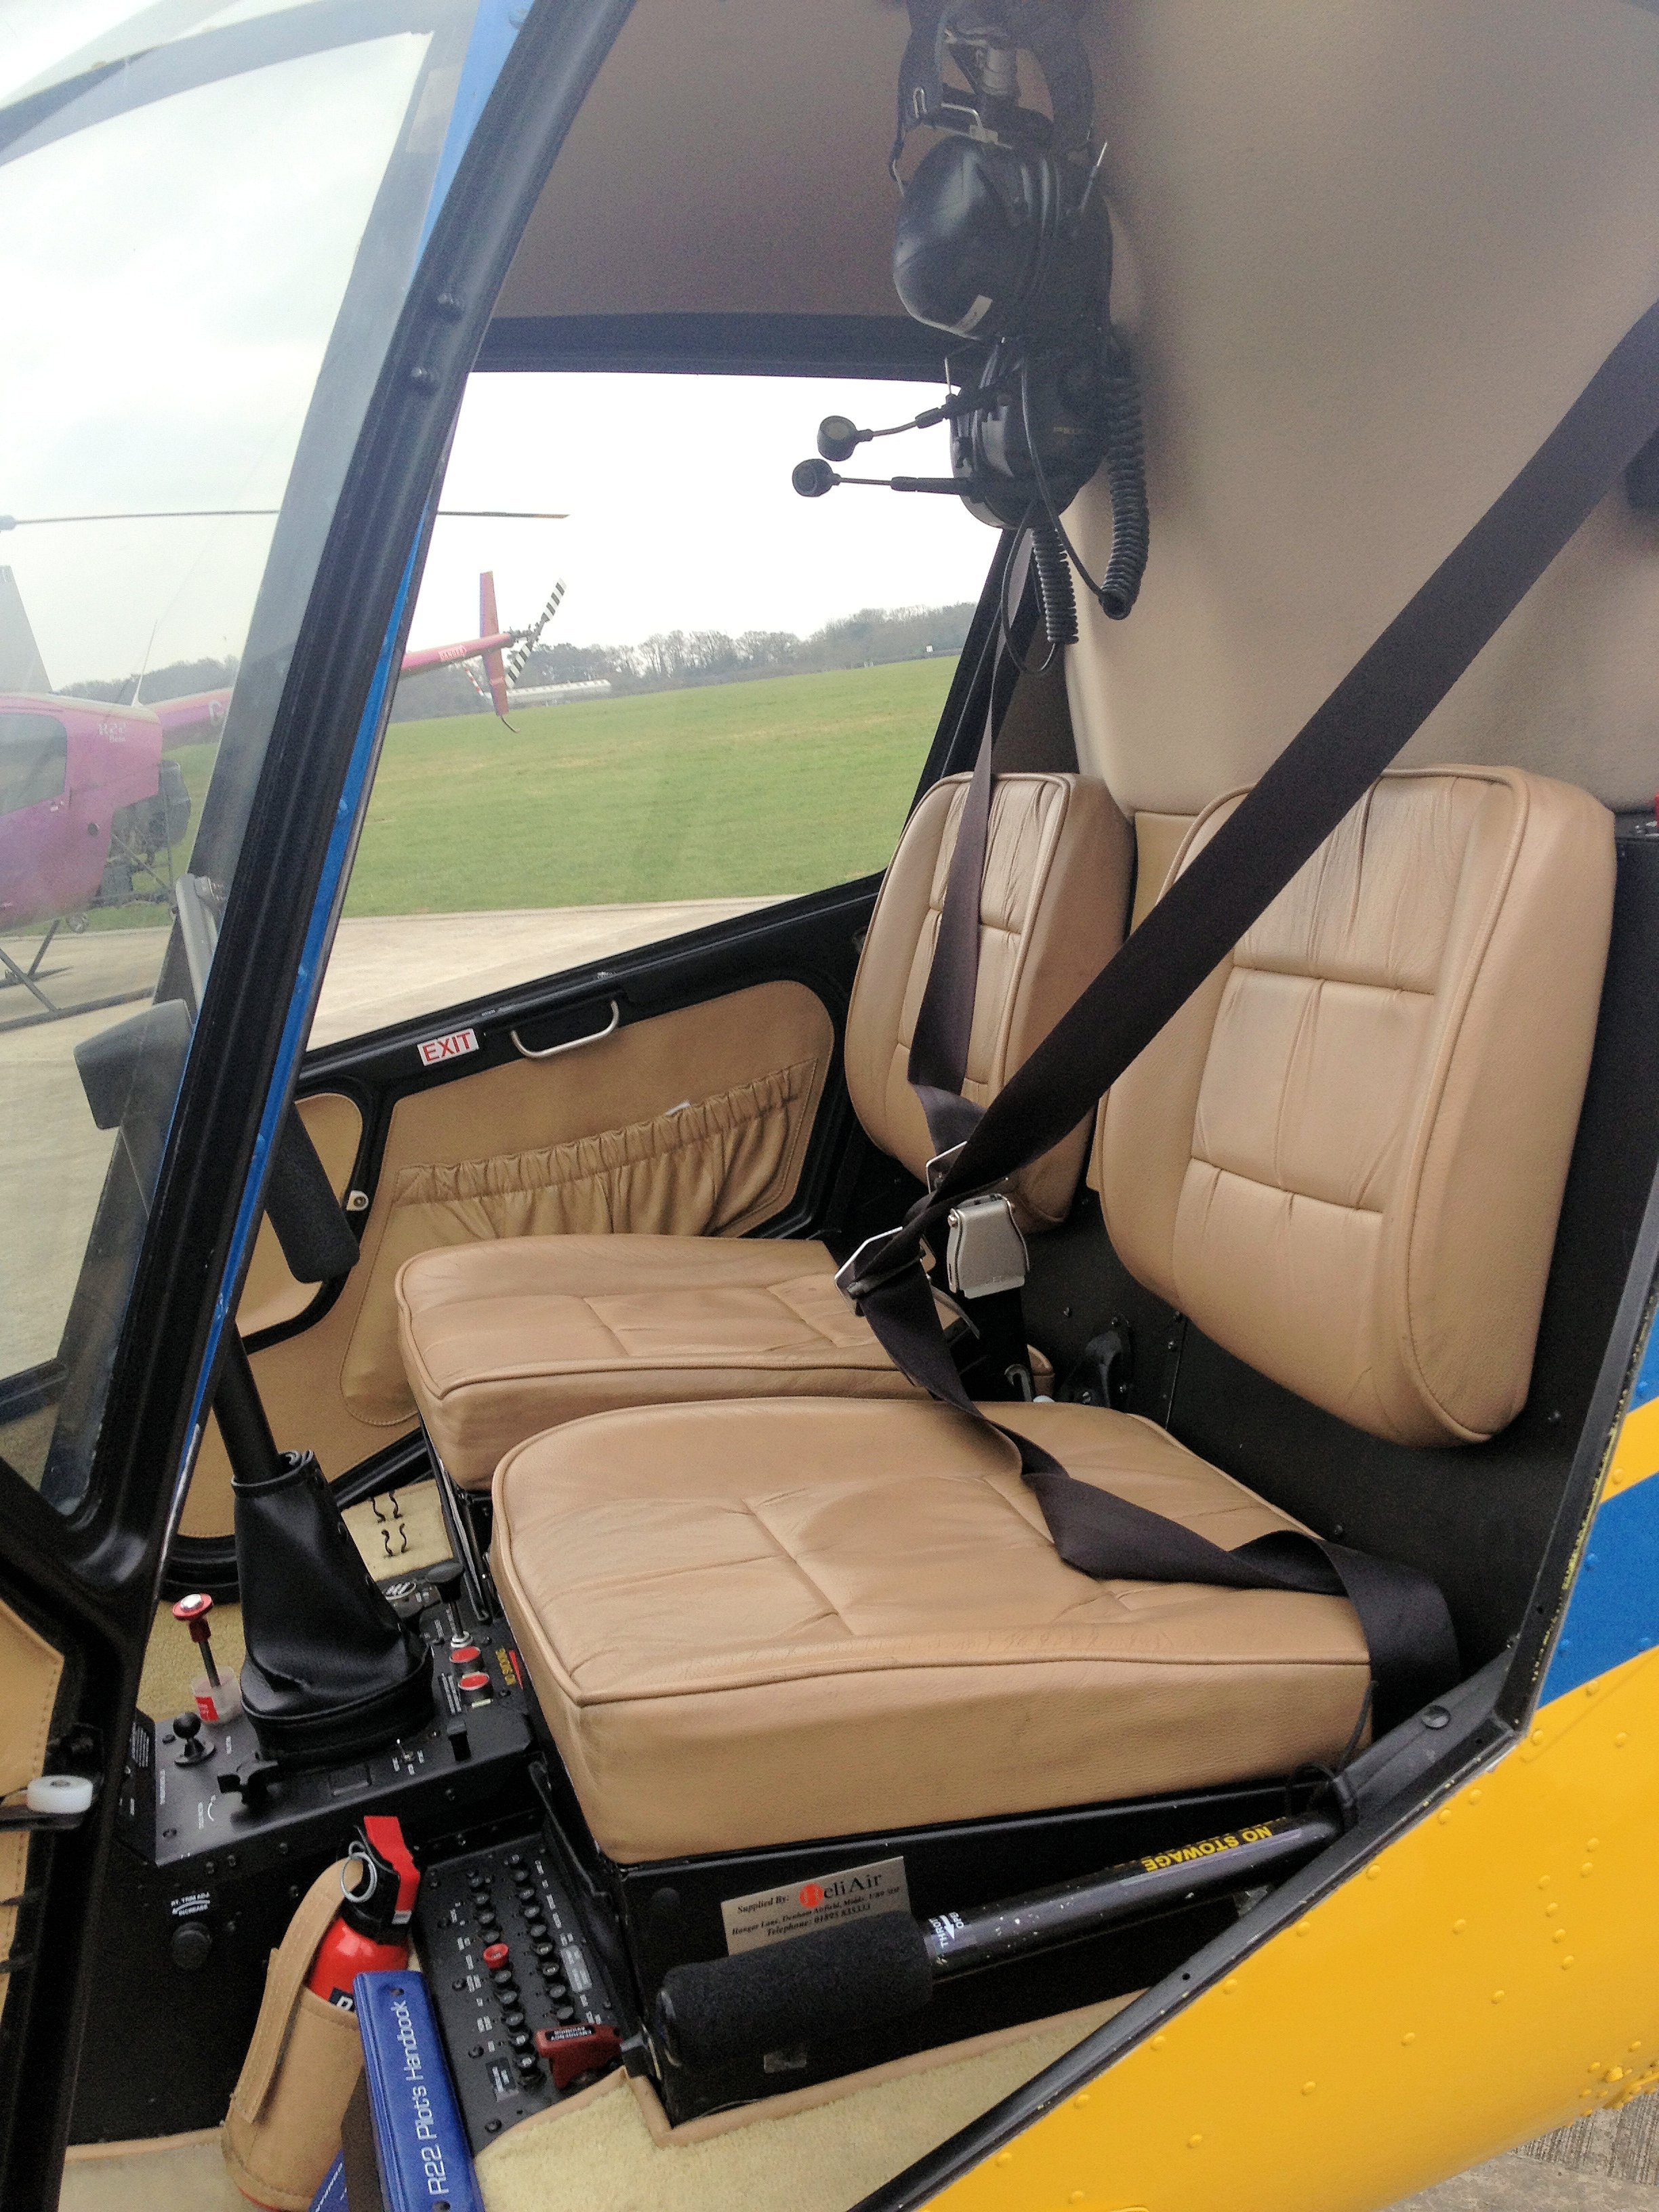 helicopter ride in london with Used Robinson R22 Beta New 2014 Overhaul on Lysosome also Chopper also Prince George Helicopter Pictures July 2016 41903439 in addition Washington Monument Reflecting Pool National Mall further 9 Facts About The Coolest Creature In Jurassic World.